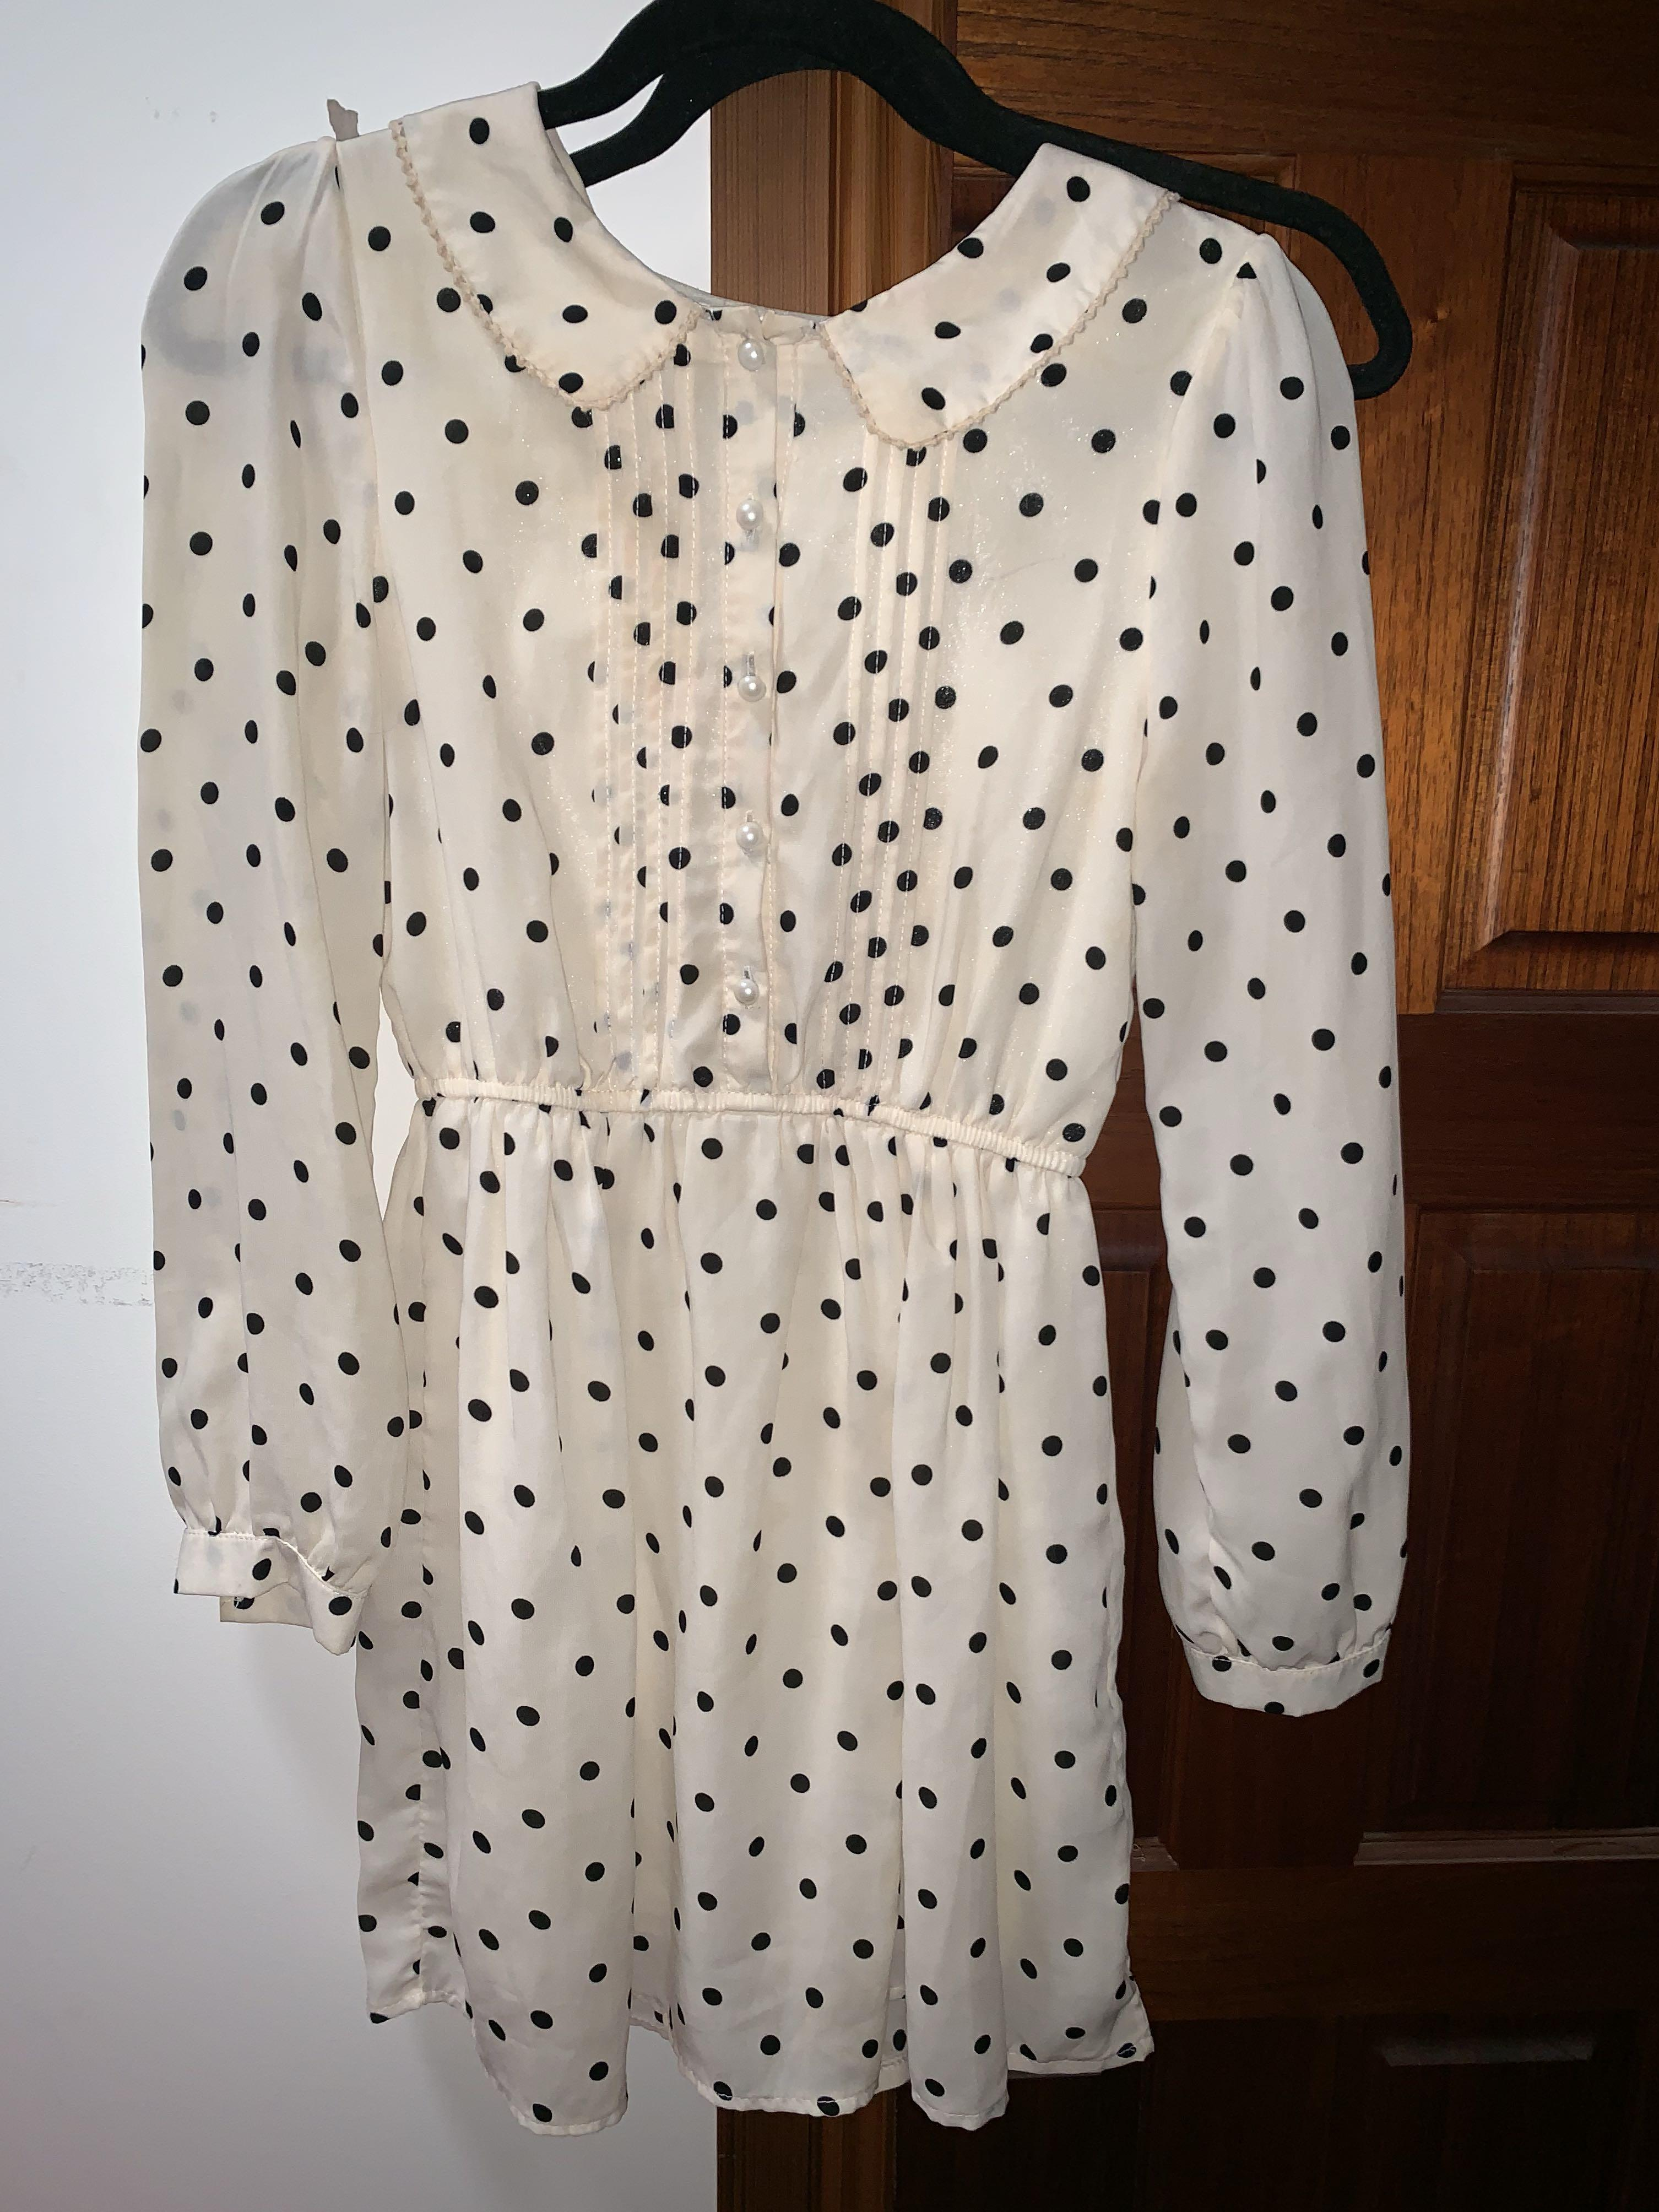 Polkadot white black vintage dress - button up - long sleeve - cute collar